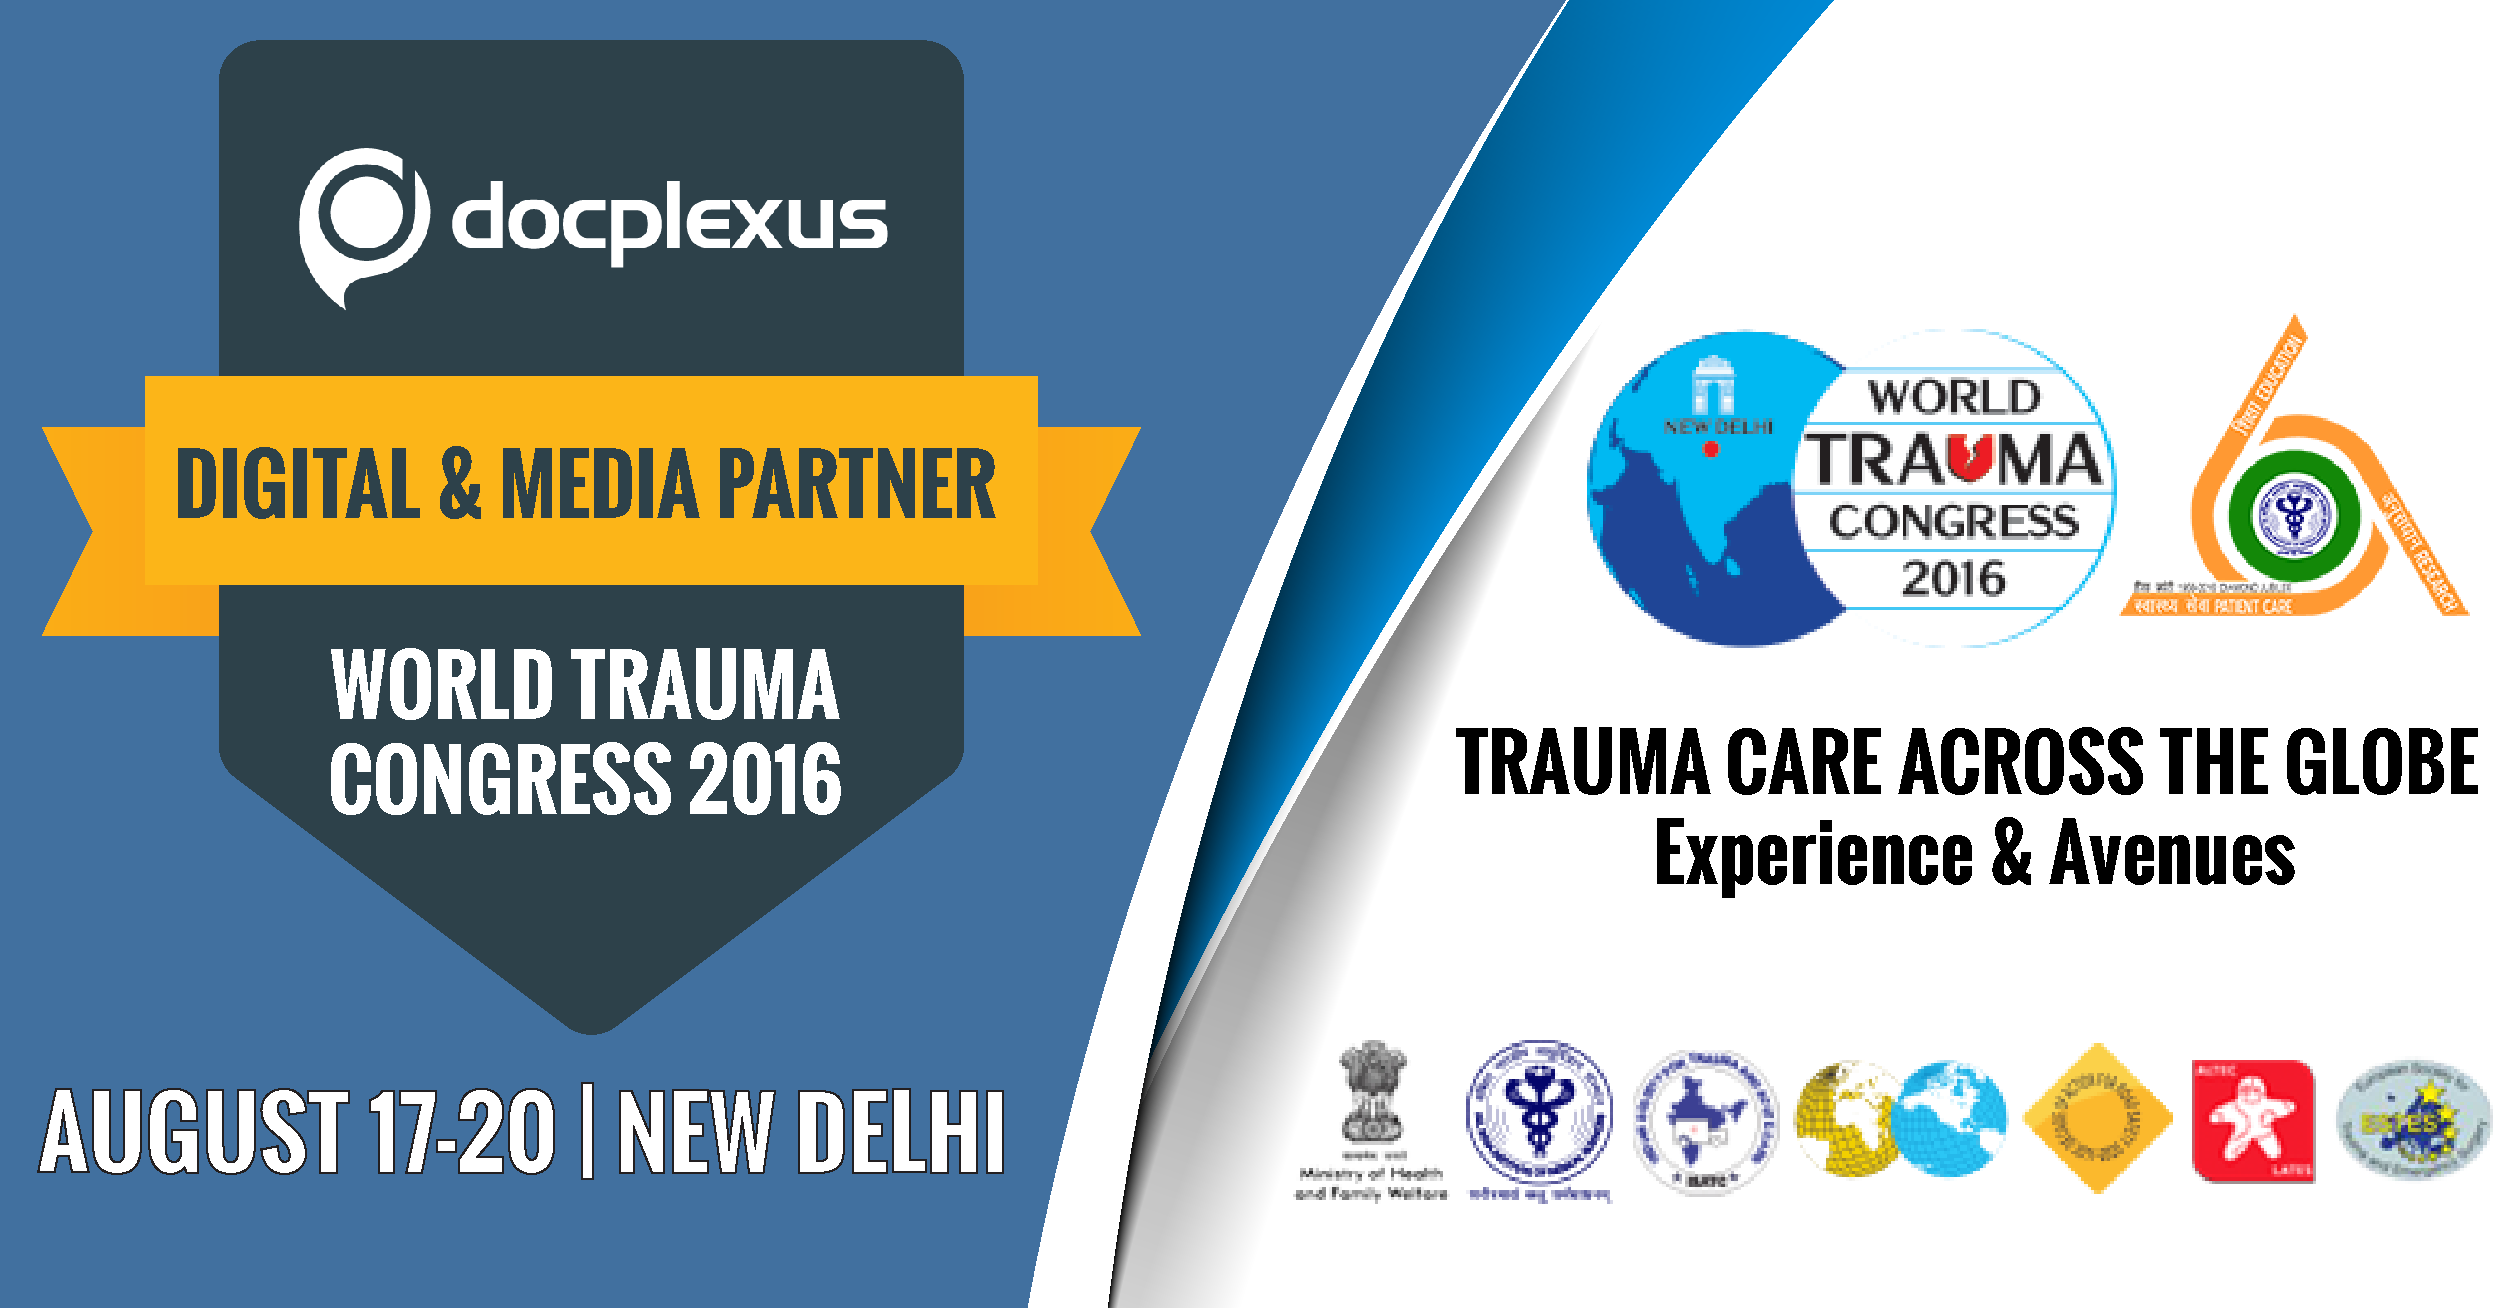 Docplexus Nominated As Partner For World Trauma Congress, 2016